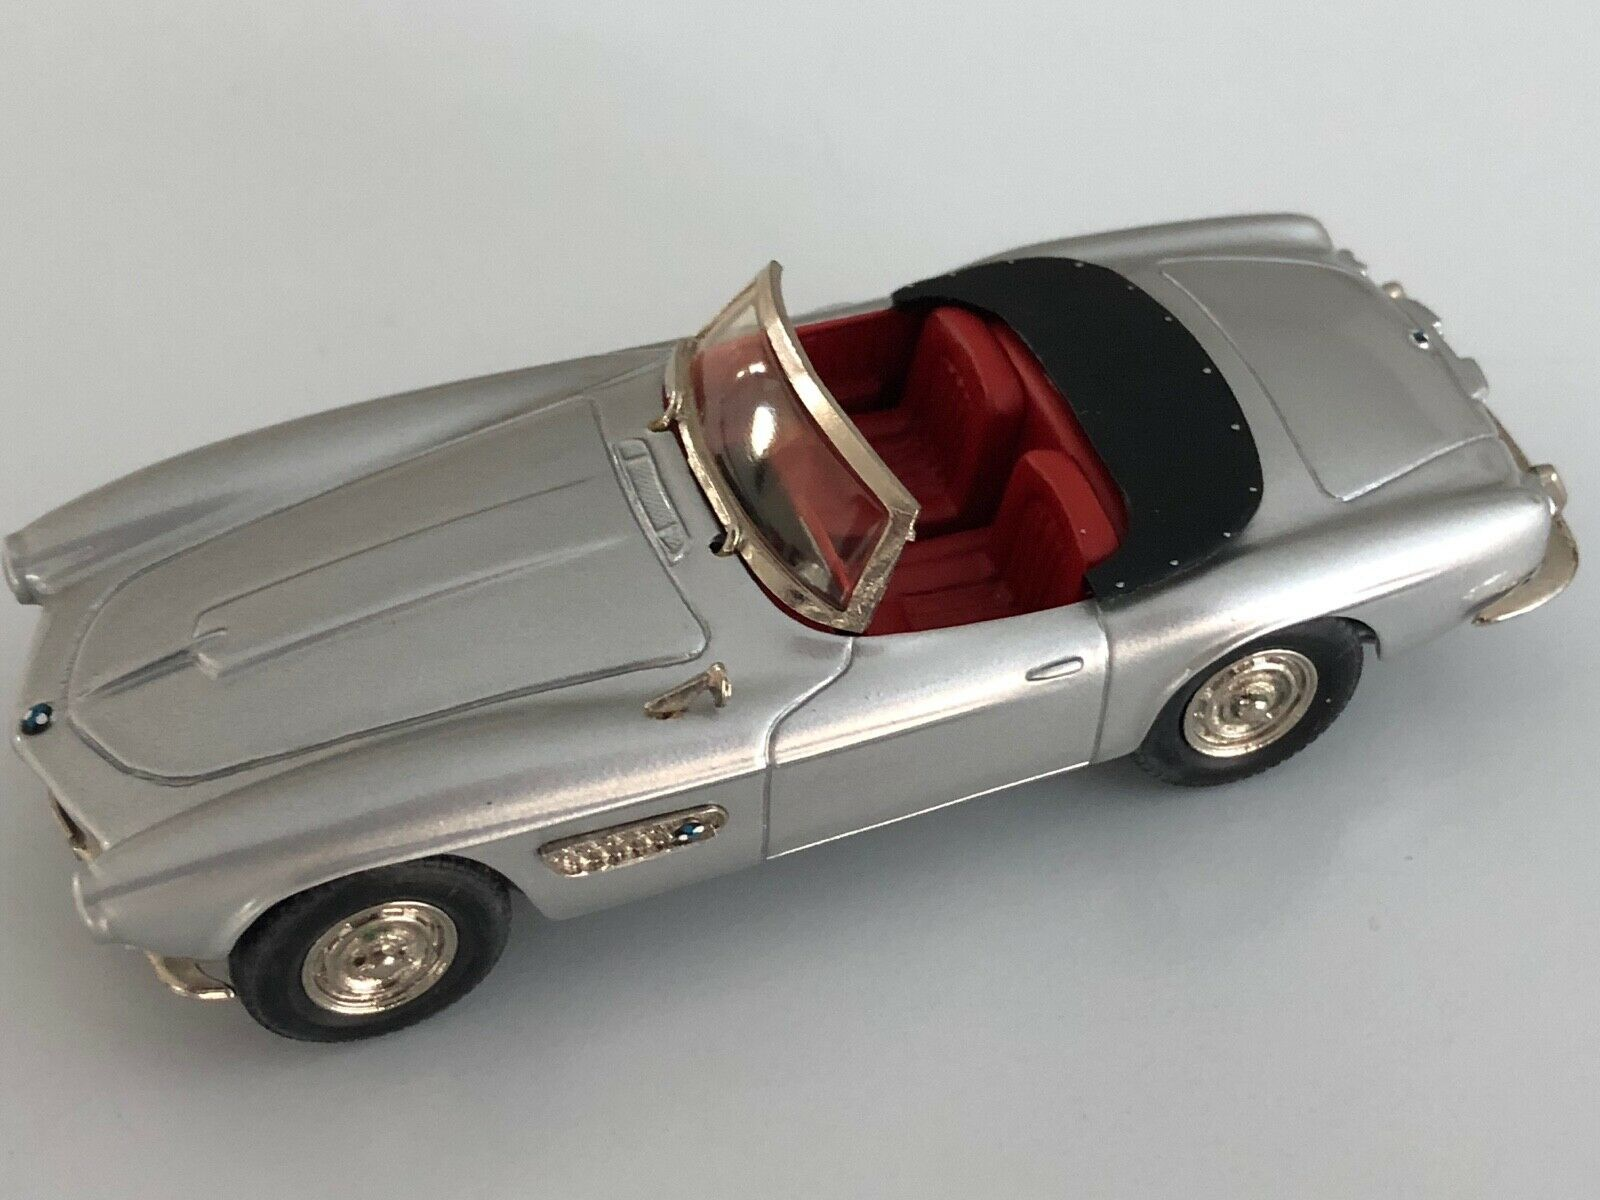 Danhausen Metal 43 AMR BMW 507 Roadster handbuilt handbuilt handbuilt model in 1 43 scale No. 1028 4ddac8